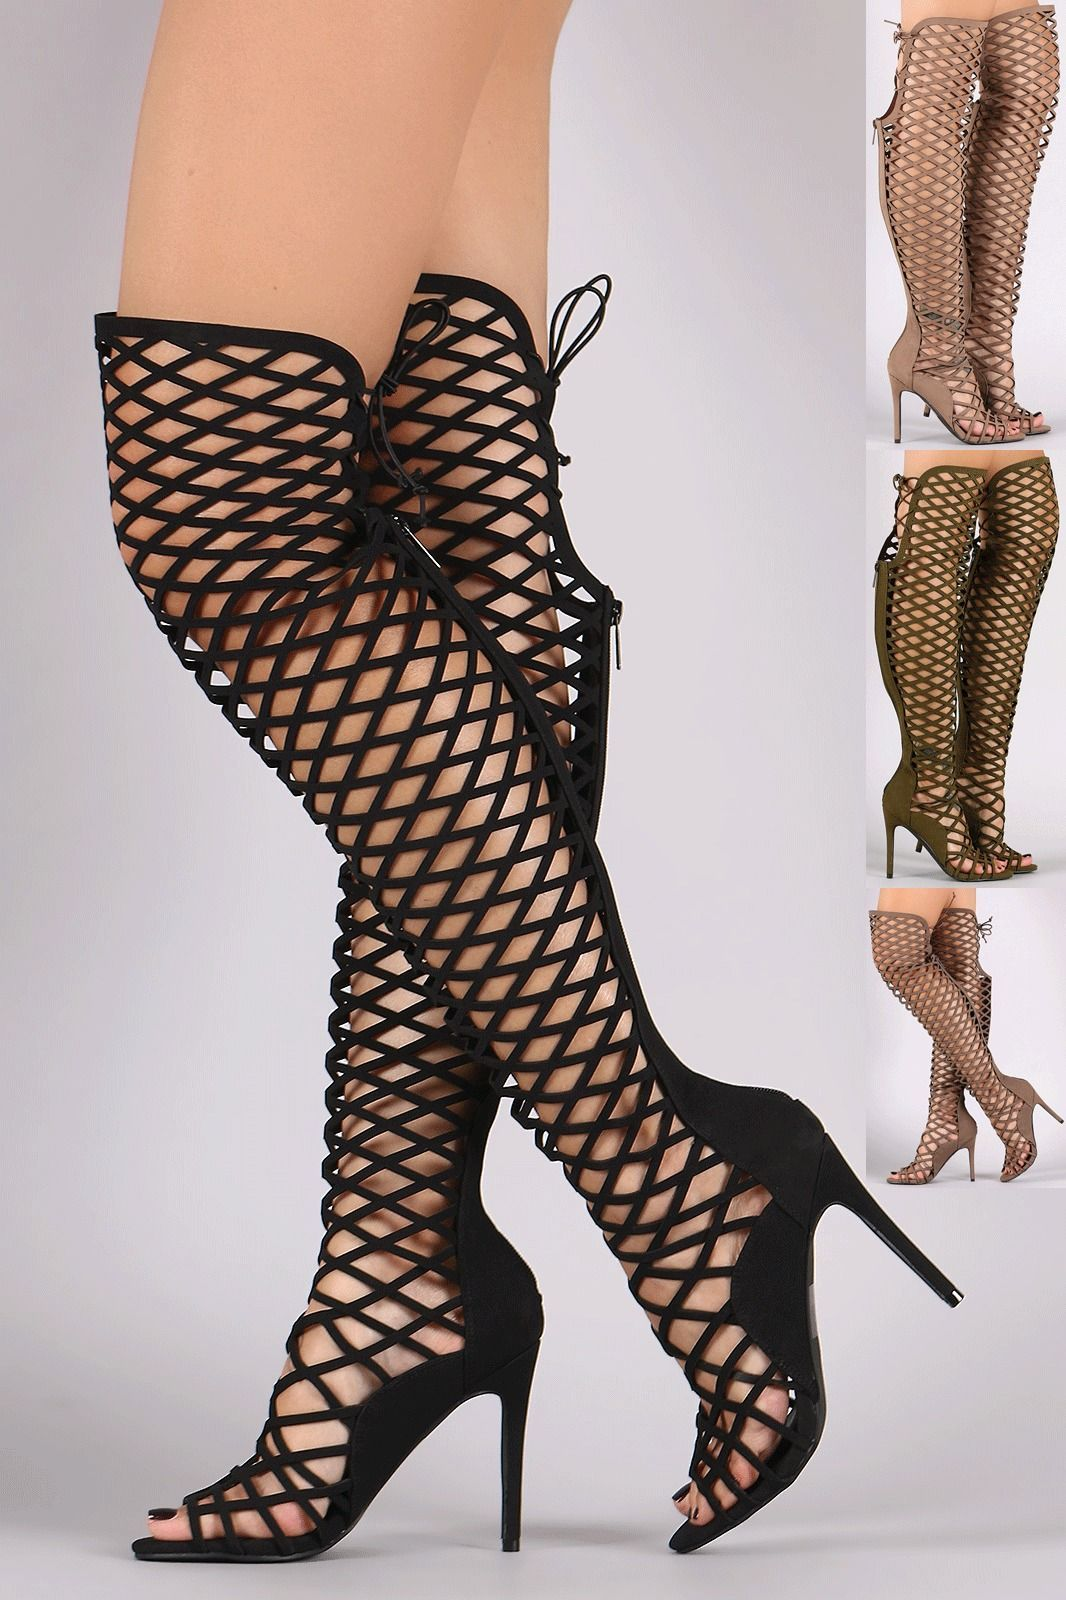 1292e6780382f Womens Caged Lace Up Gladiator Stiletto High Heel Sandal Open Toe Boot Knee  High